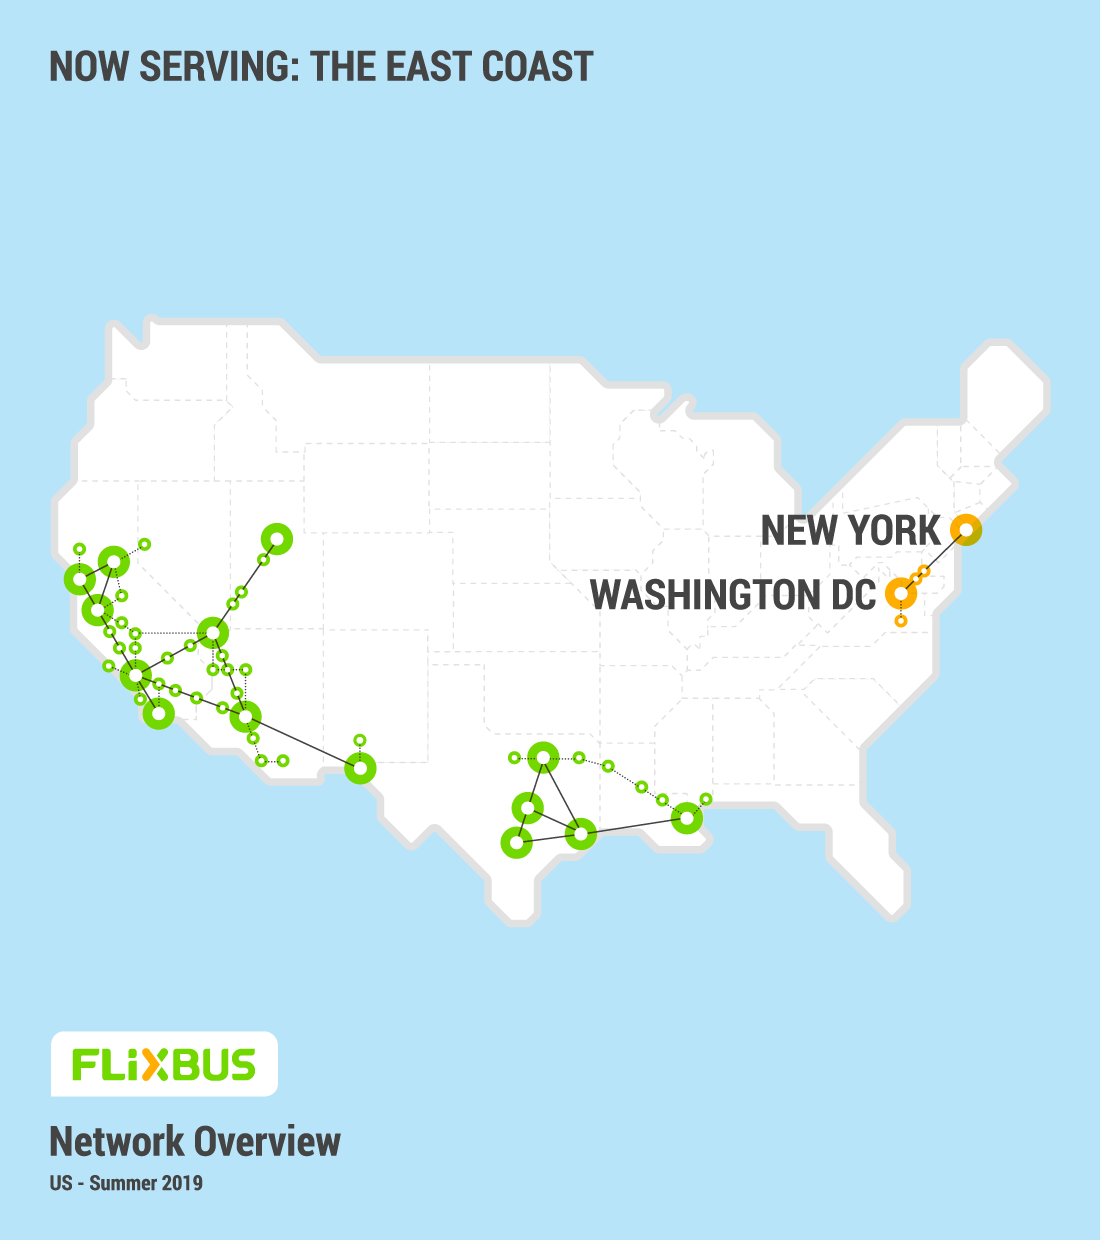 FlixBus: Convenient and affordable bus travel in the US from $4.99 on map of nyc bridge, map of nyc walking, map of nyc metro, map of nyc airport, map of nyc art, map of nyc vintage, map of nyc food, map of nyc restaurants, map of nyc trains, map of nyc hotels, map of nyc commuter rail, map of nyc ferry, map of nyc subway, map of nyc underground, map of nyc hospital, map of nyc street,